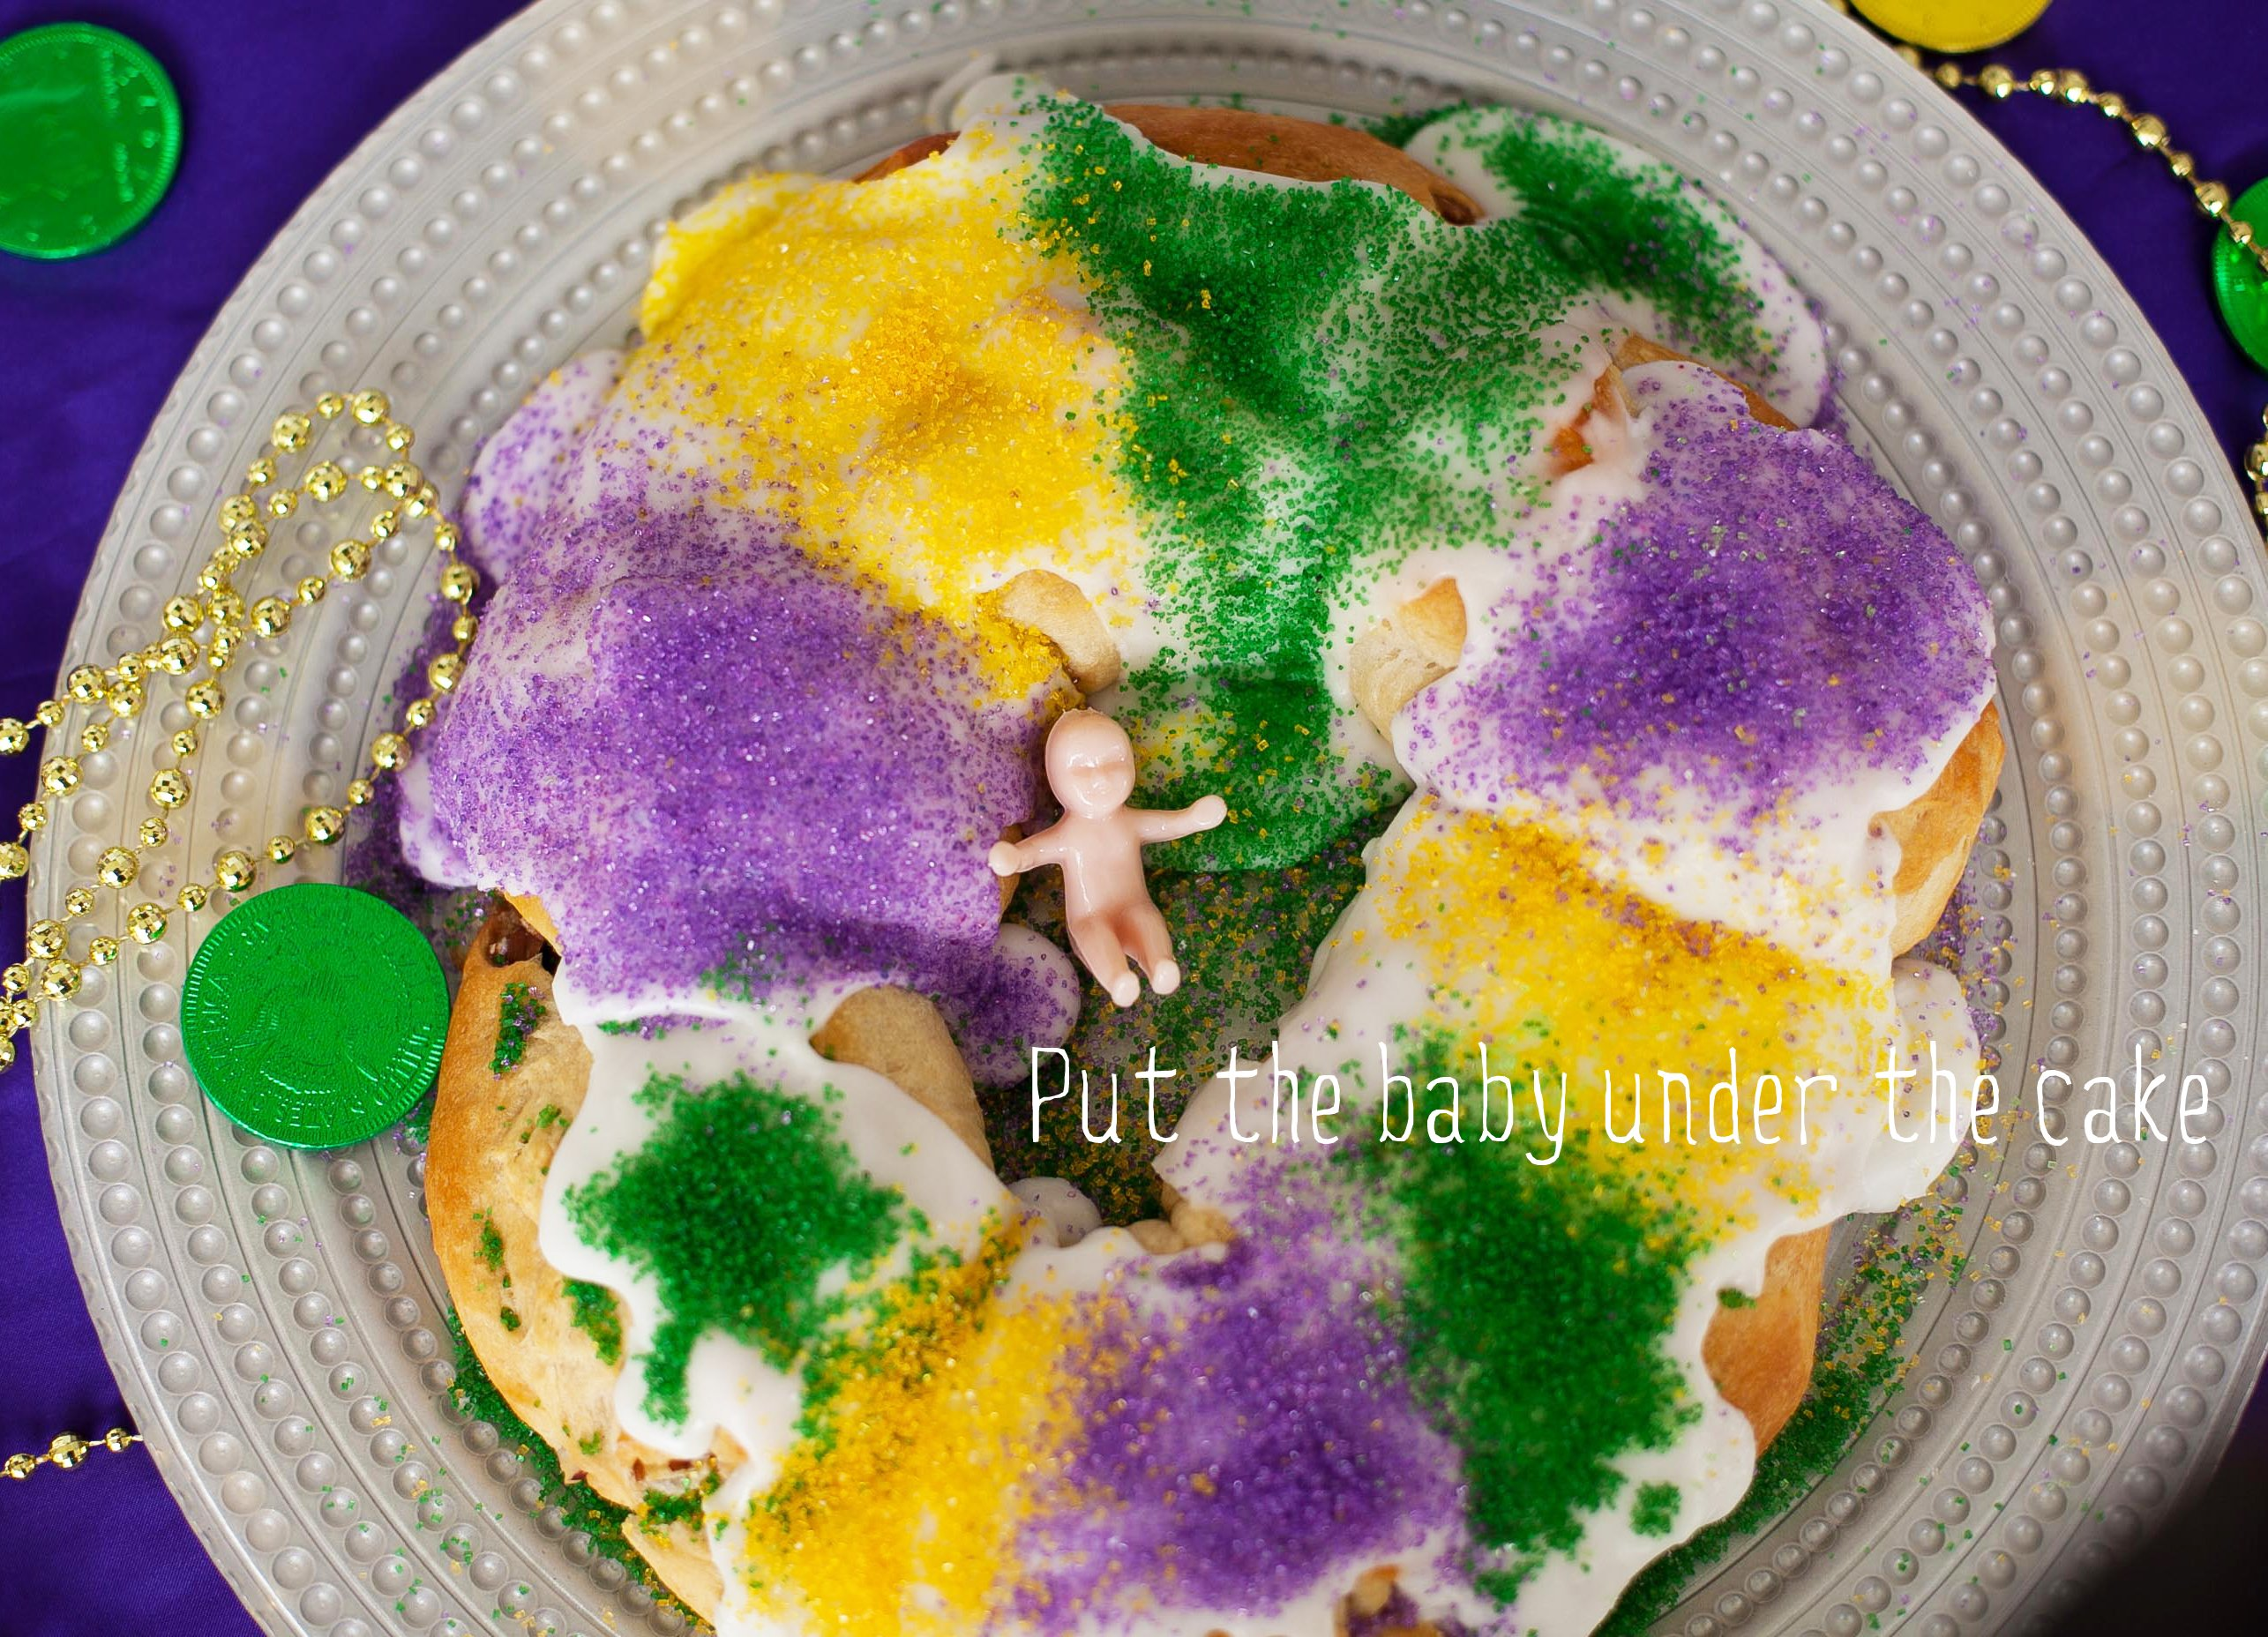 Watch King Cake video